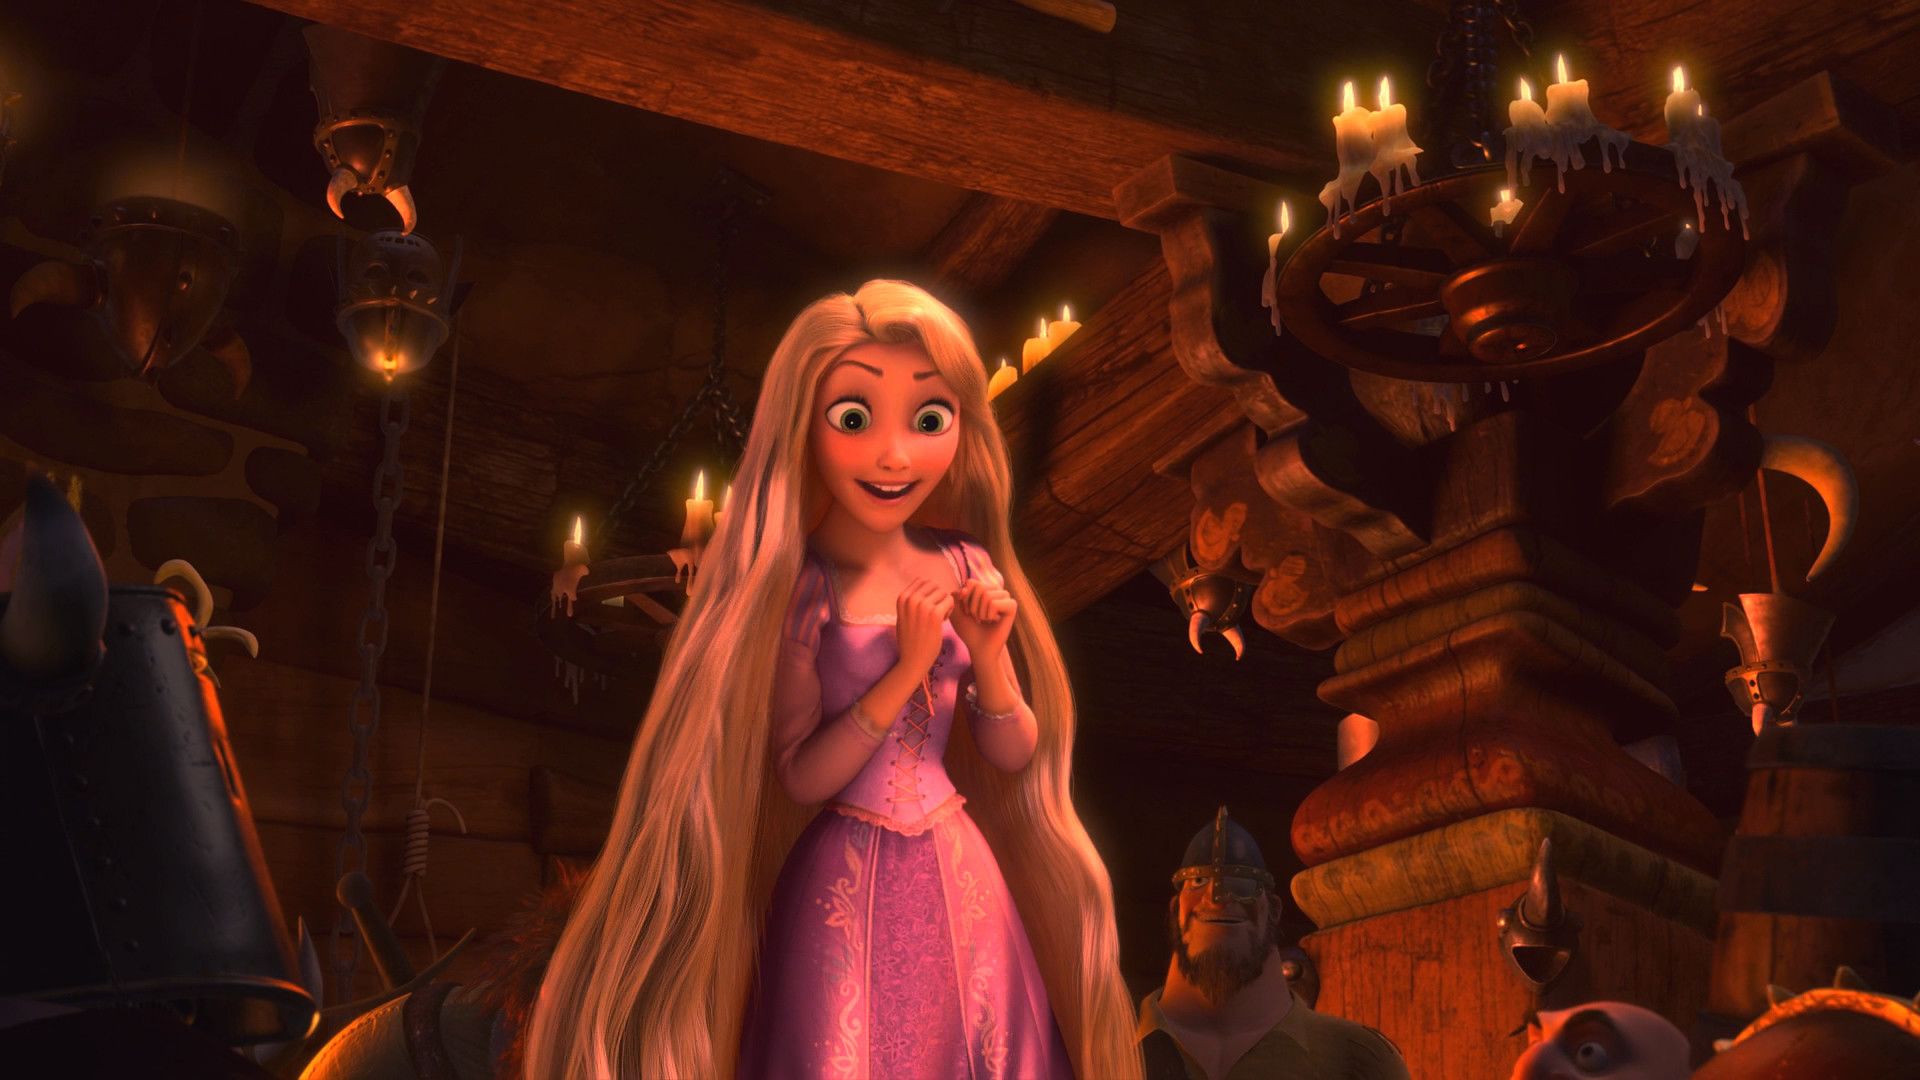 Tangled Wallpaper (64+ images)